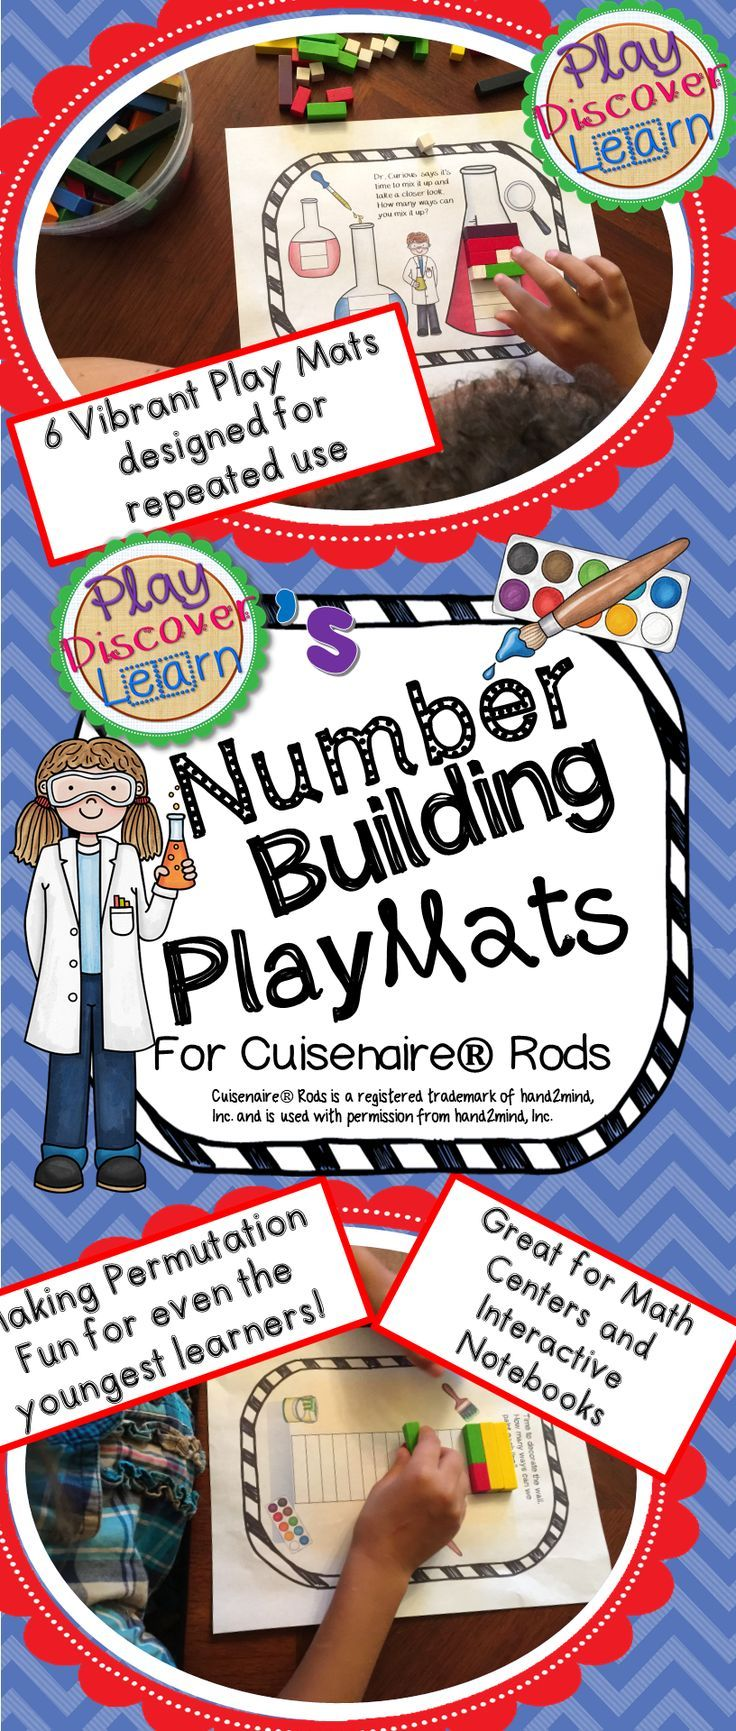 worksheet Cuisenaire Rods Worksheets 35 best cuisenaire rods activities images on pinterest maths pdls number building playmats for uses to allow the child